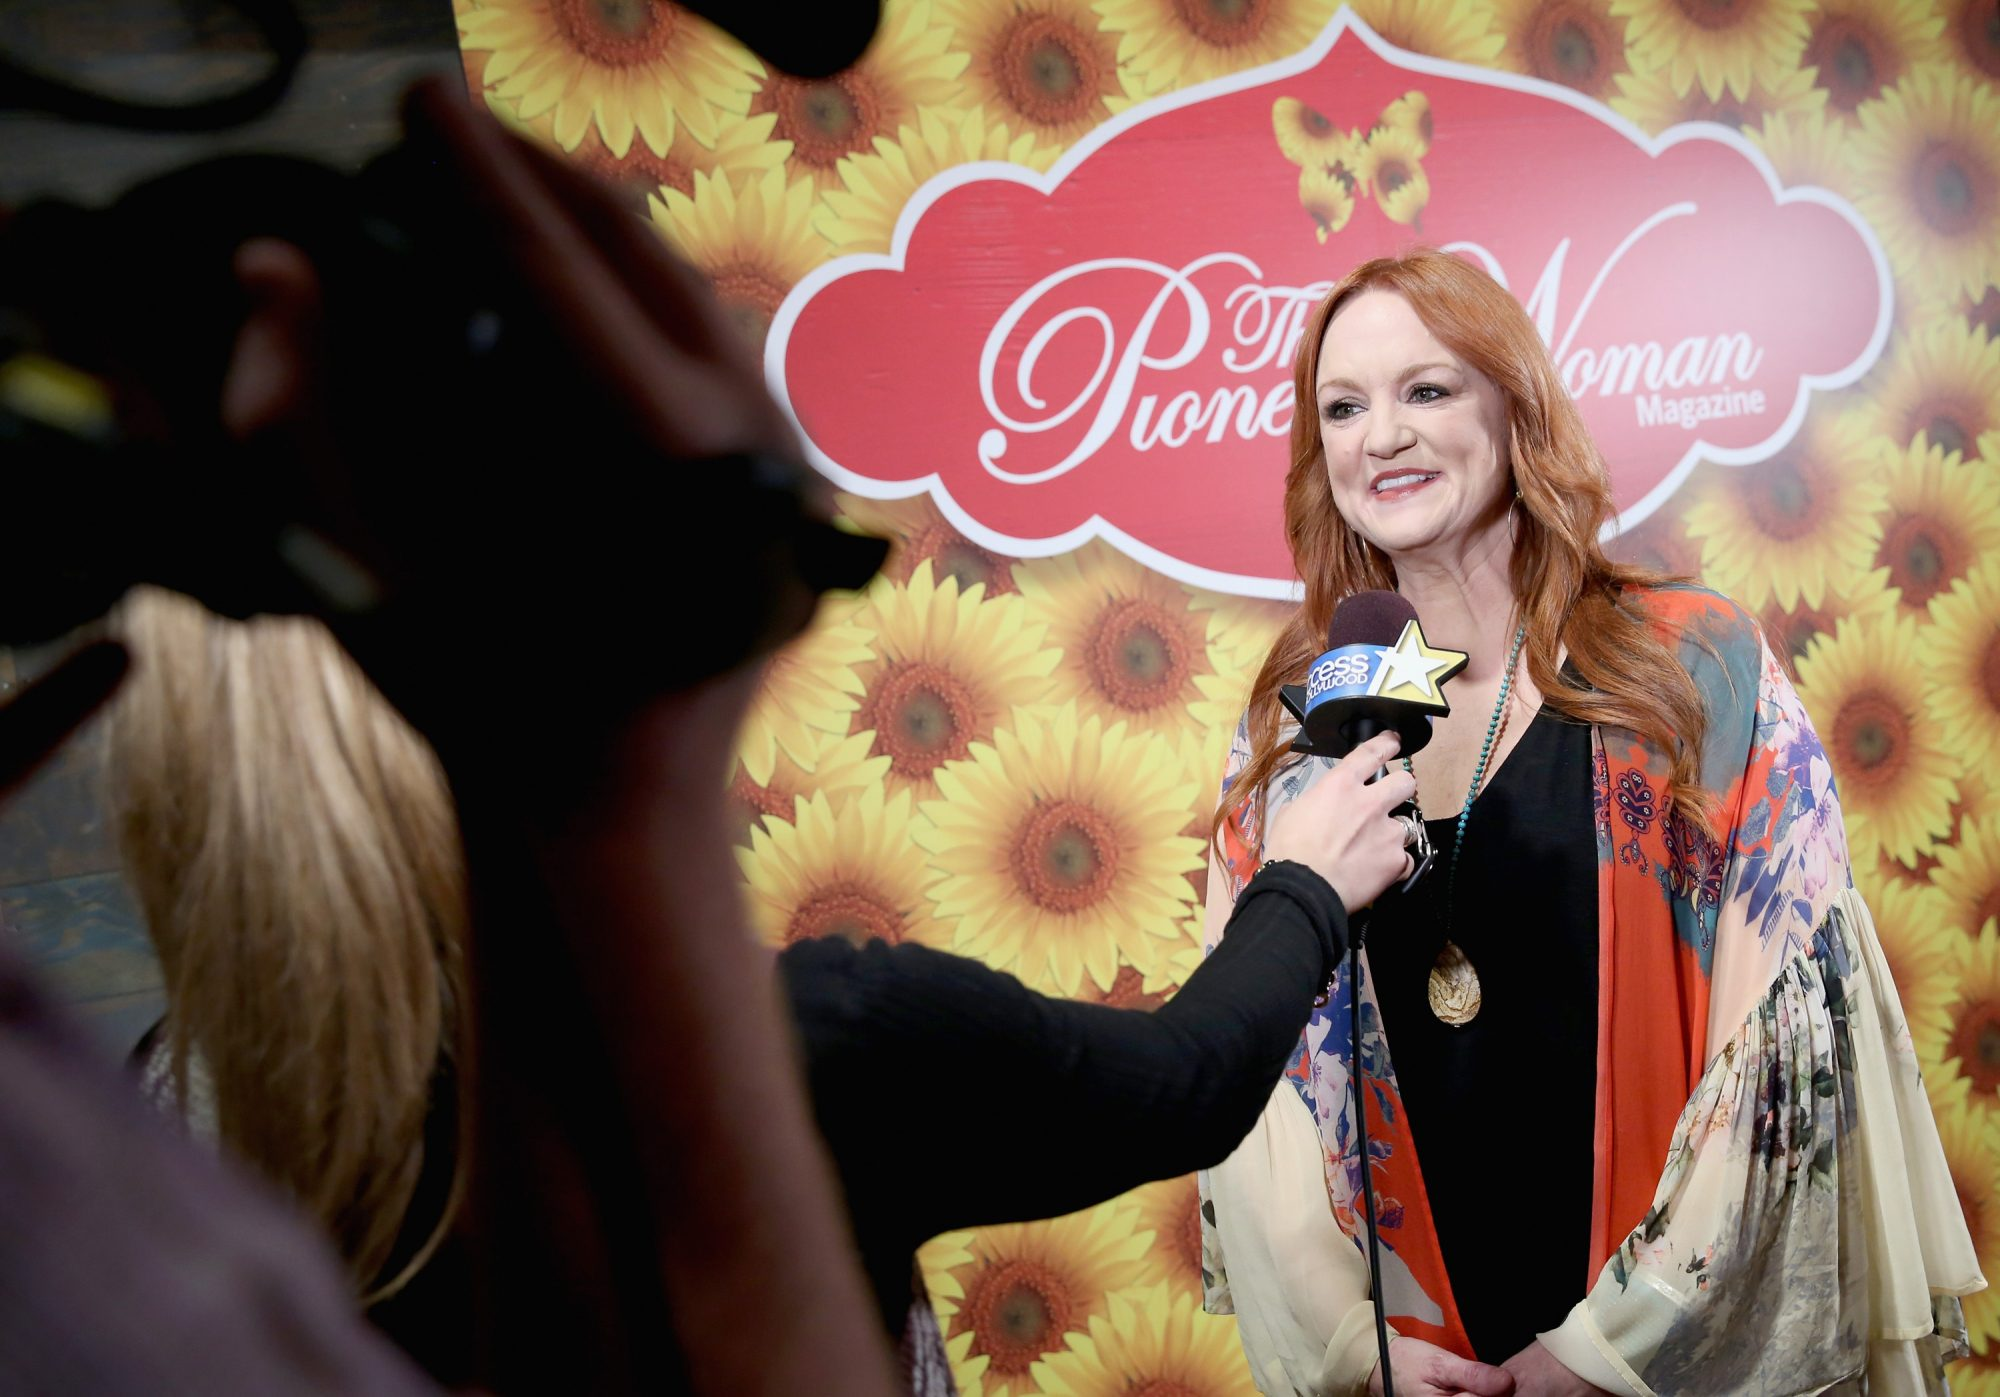 Ree Drummond's Real Name Is Oh So Southern